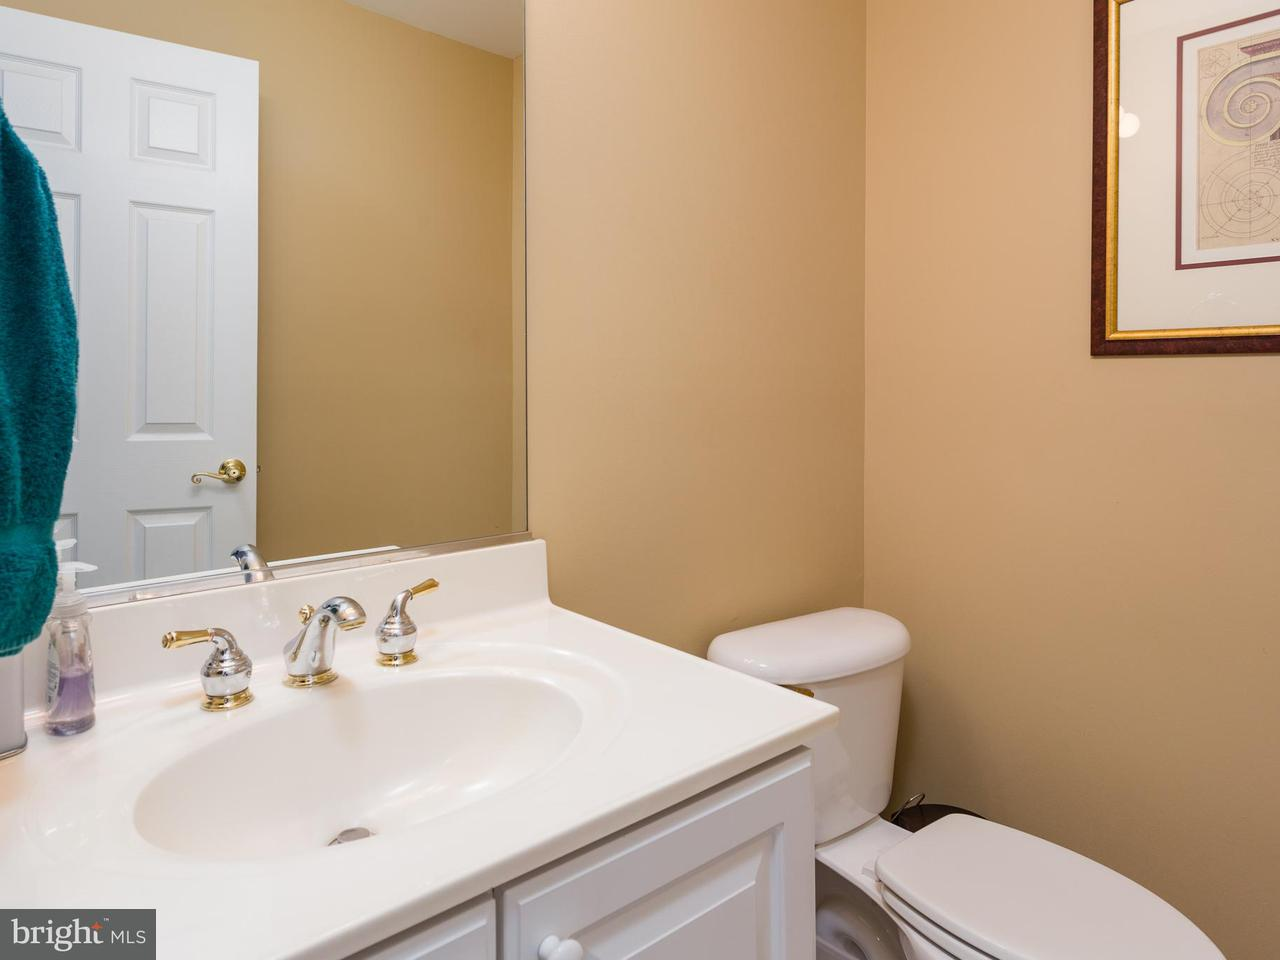 Additional photo for property listing at 108 Lounsbury Place 108 Lounsbury Place 弗尔斯切赫, 弗吉尼亚州 22046 美国